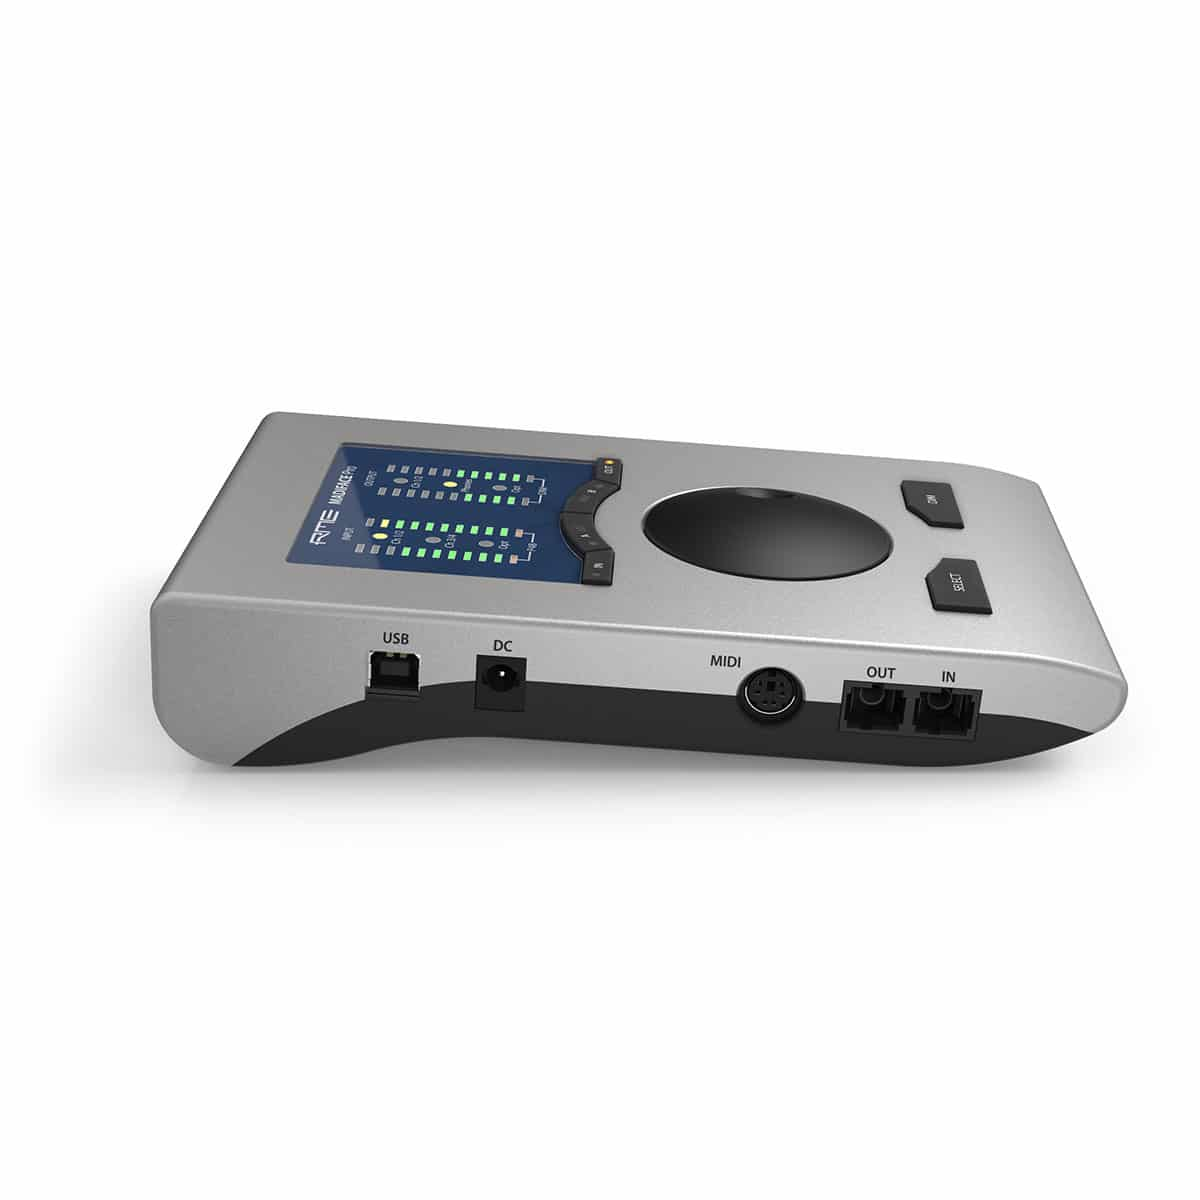 RME Madiface Pro 02 Pro Audio, Audio Digitale, Schede Audio per PC e MAC